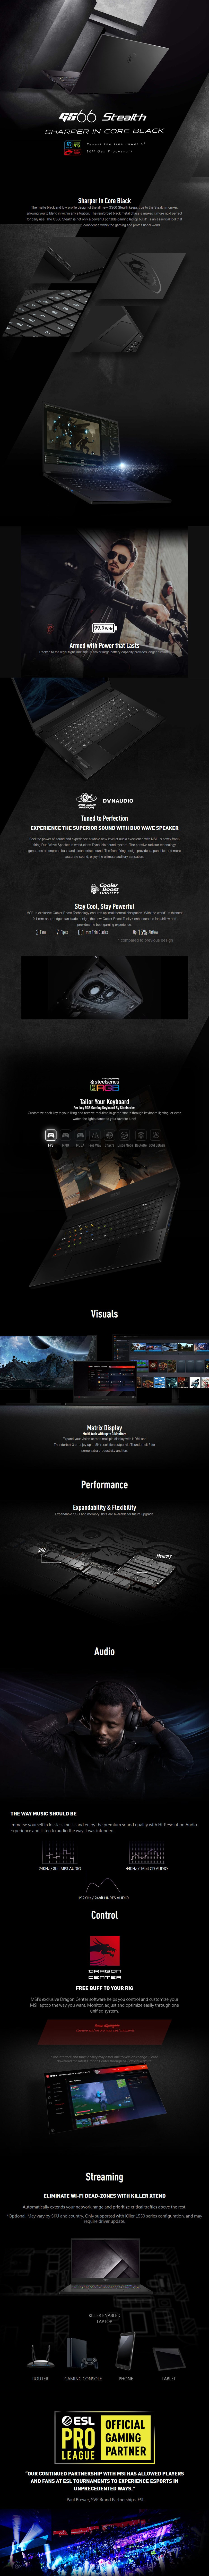 """MSI GS66 Stealth 10SF 15.6"""" 240Hz Gaming Laptop i7-10875H 16GB 1TB RTX2070 W10P - Overview 1"""